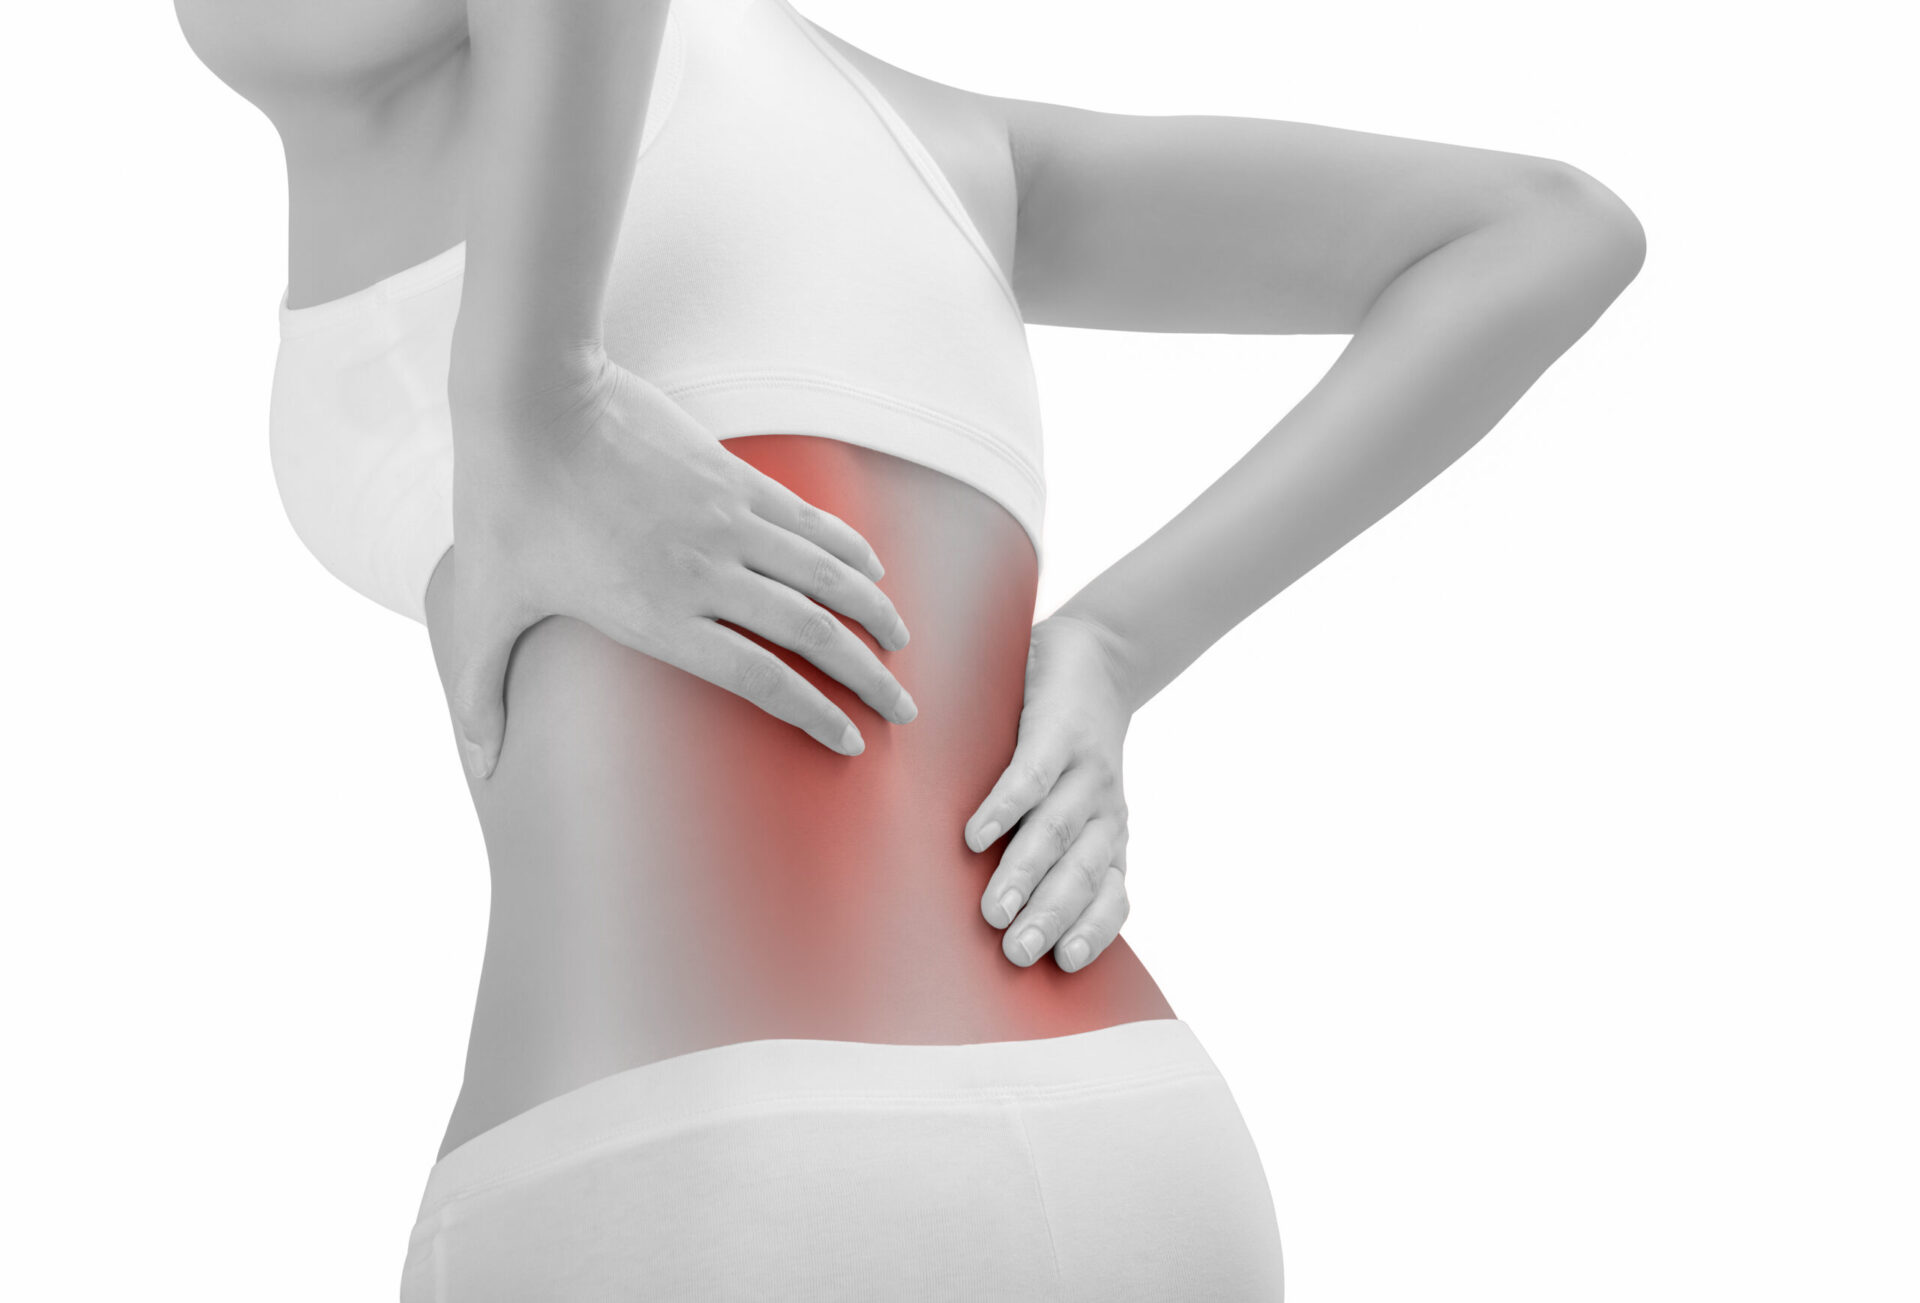 Should You See A Chiropractor For Low Back Pain?